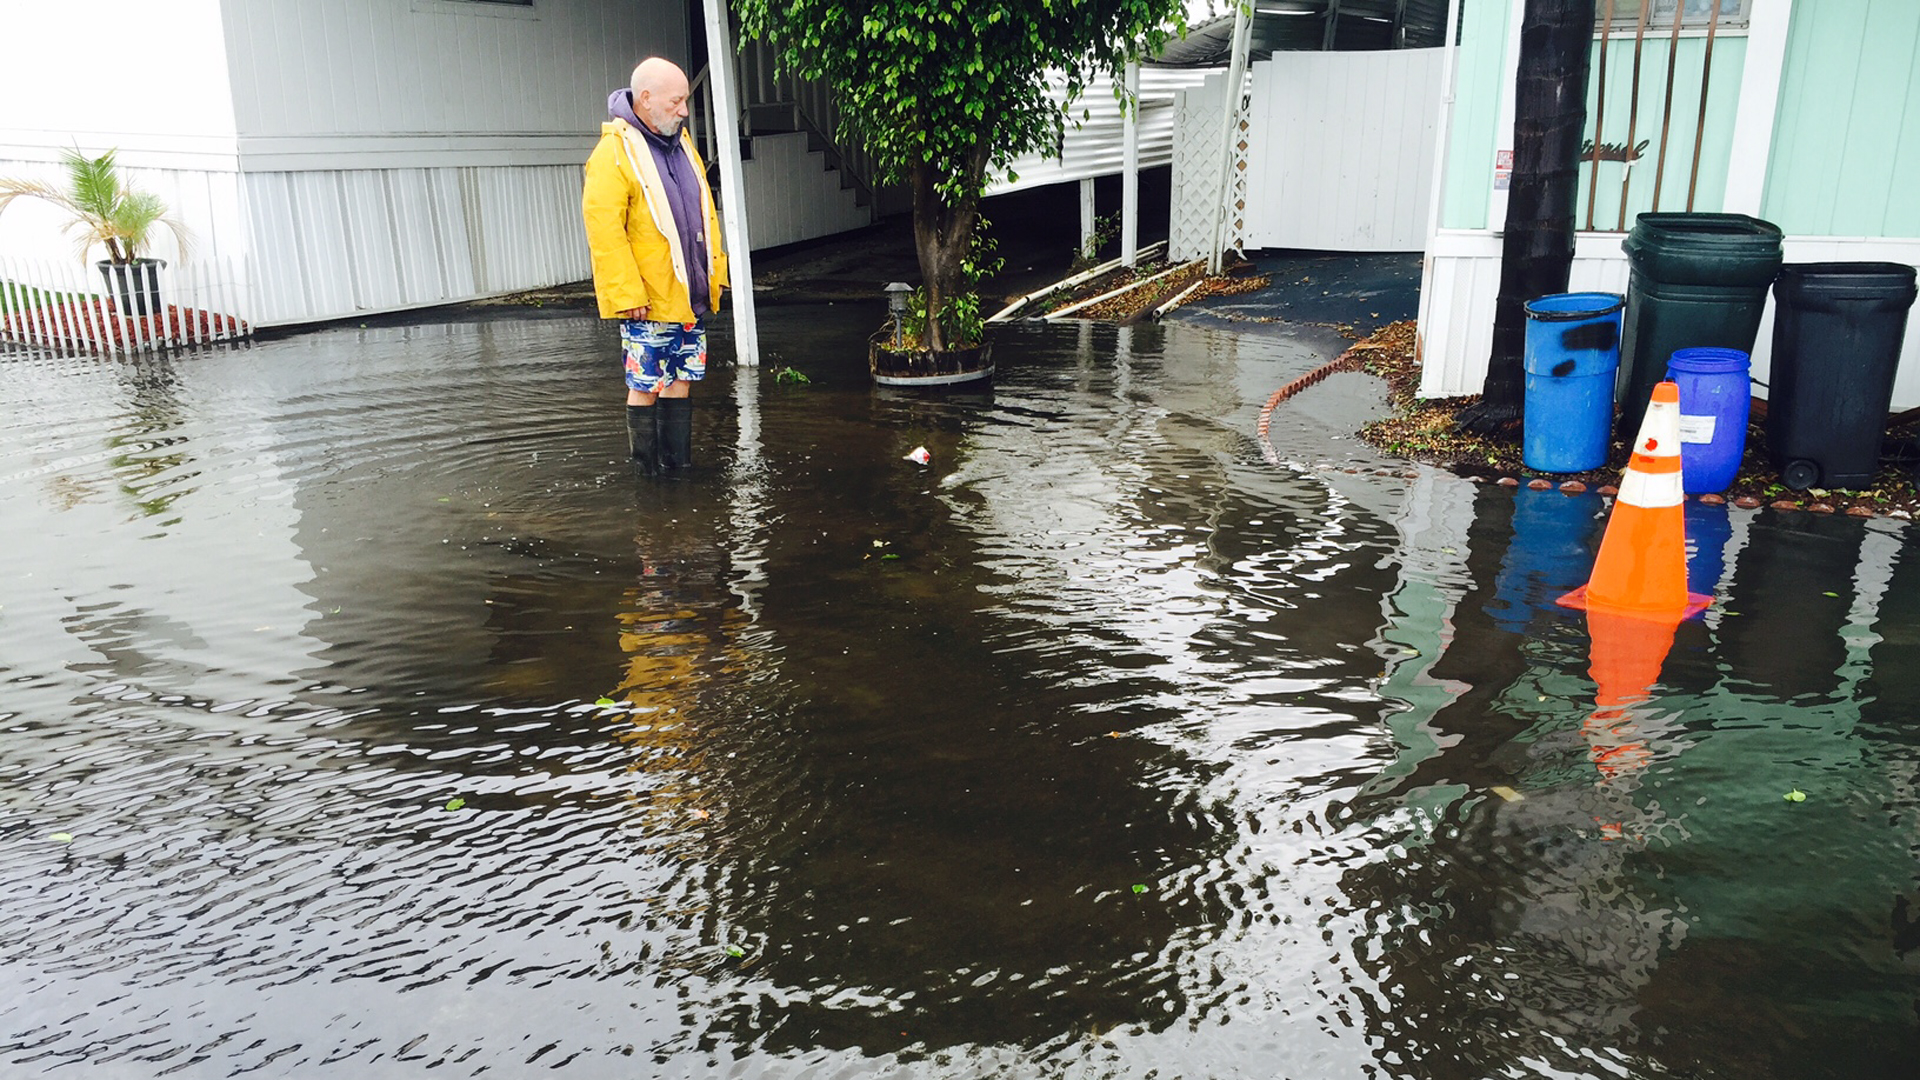 A resident of Friendly Village in Long Beach is seen standing in a flooded roadway outside his mobile home in this undated photo. (Courtesy Gina Fernandes)